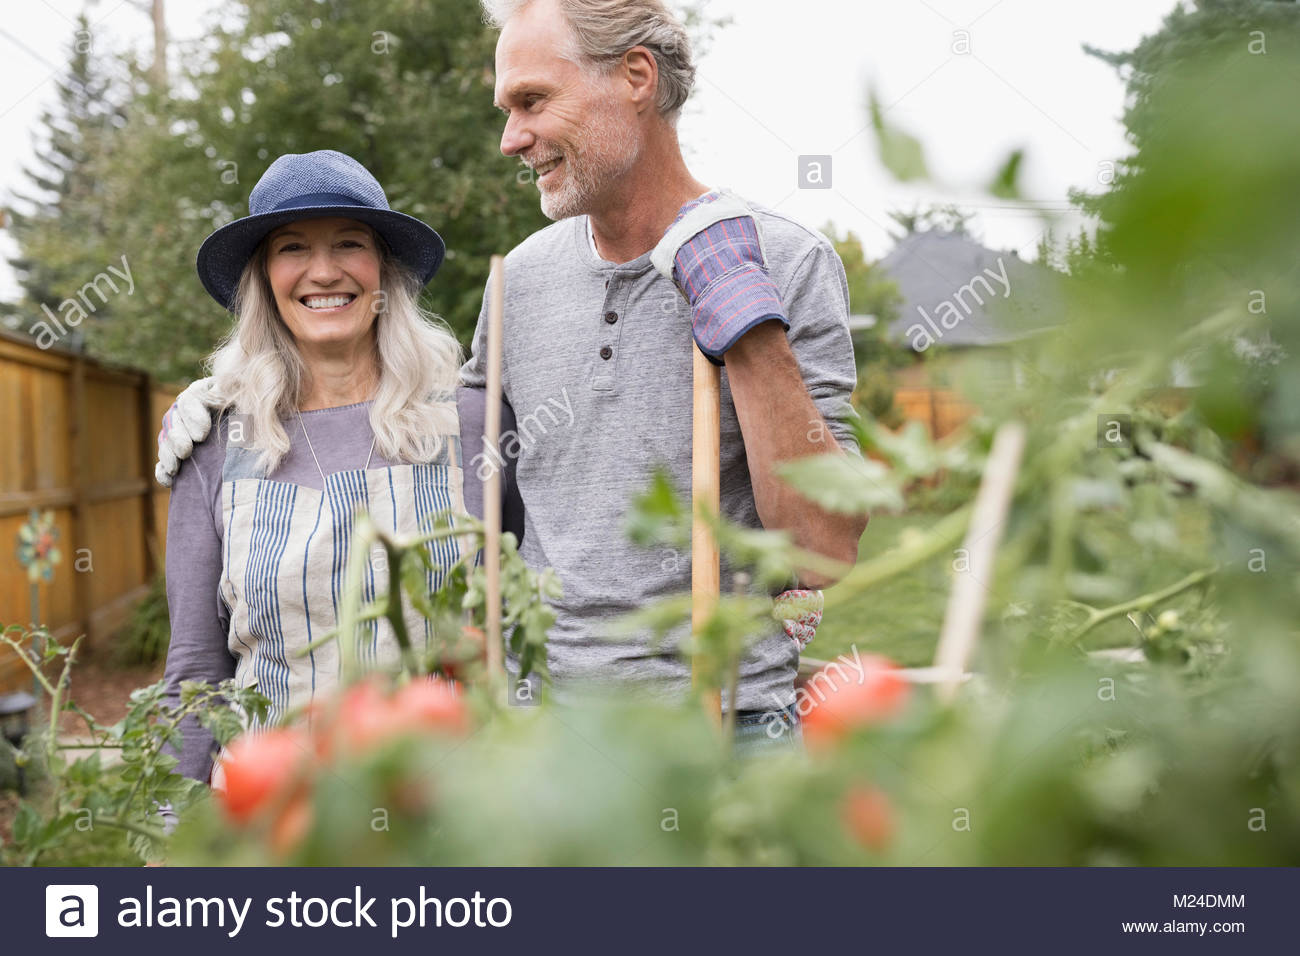 Smiling senior couple gardening - Stock Image